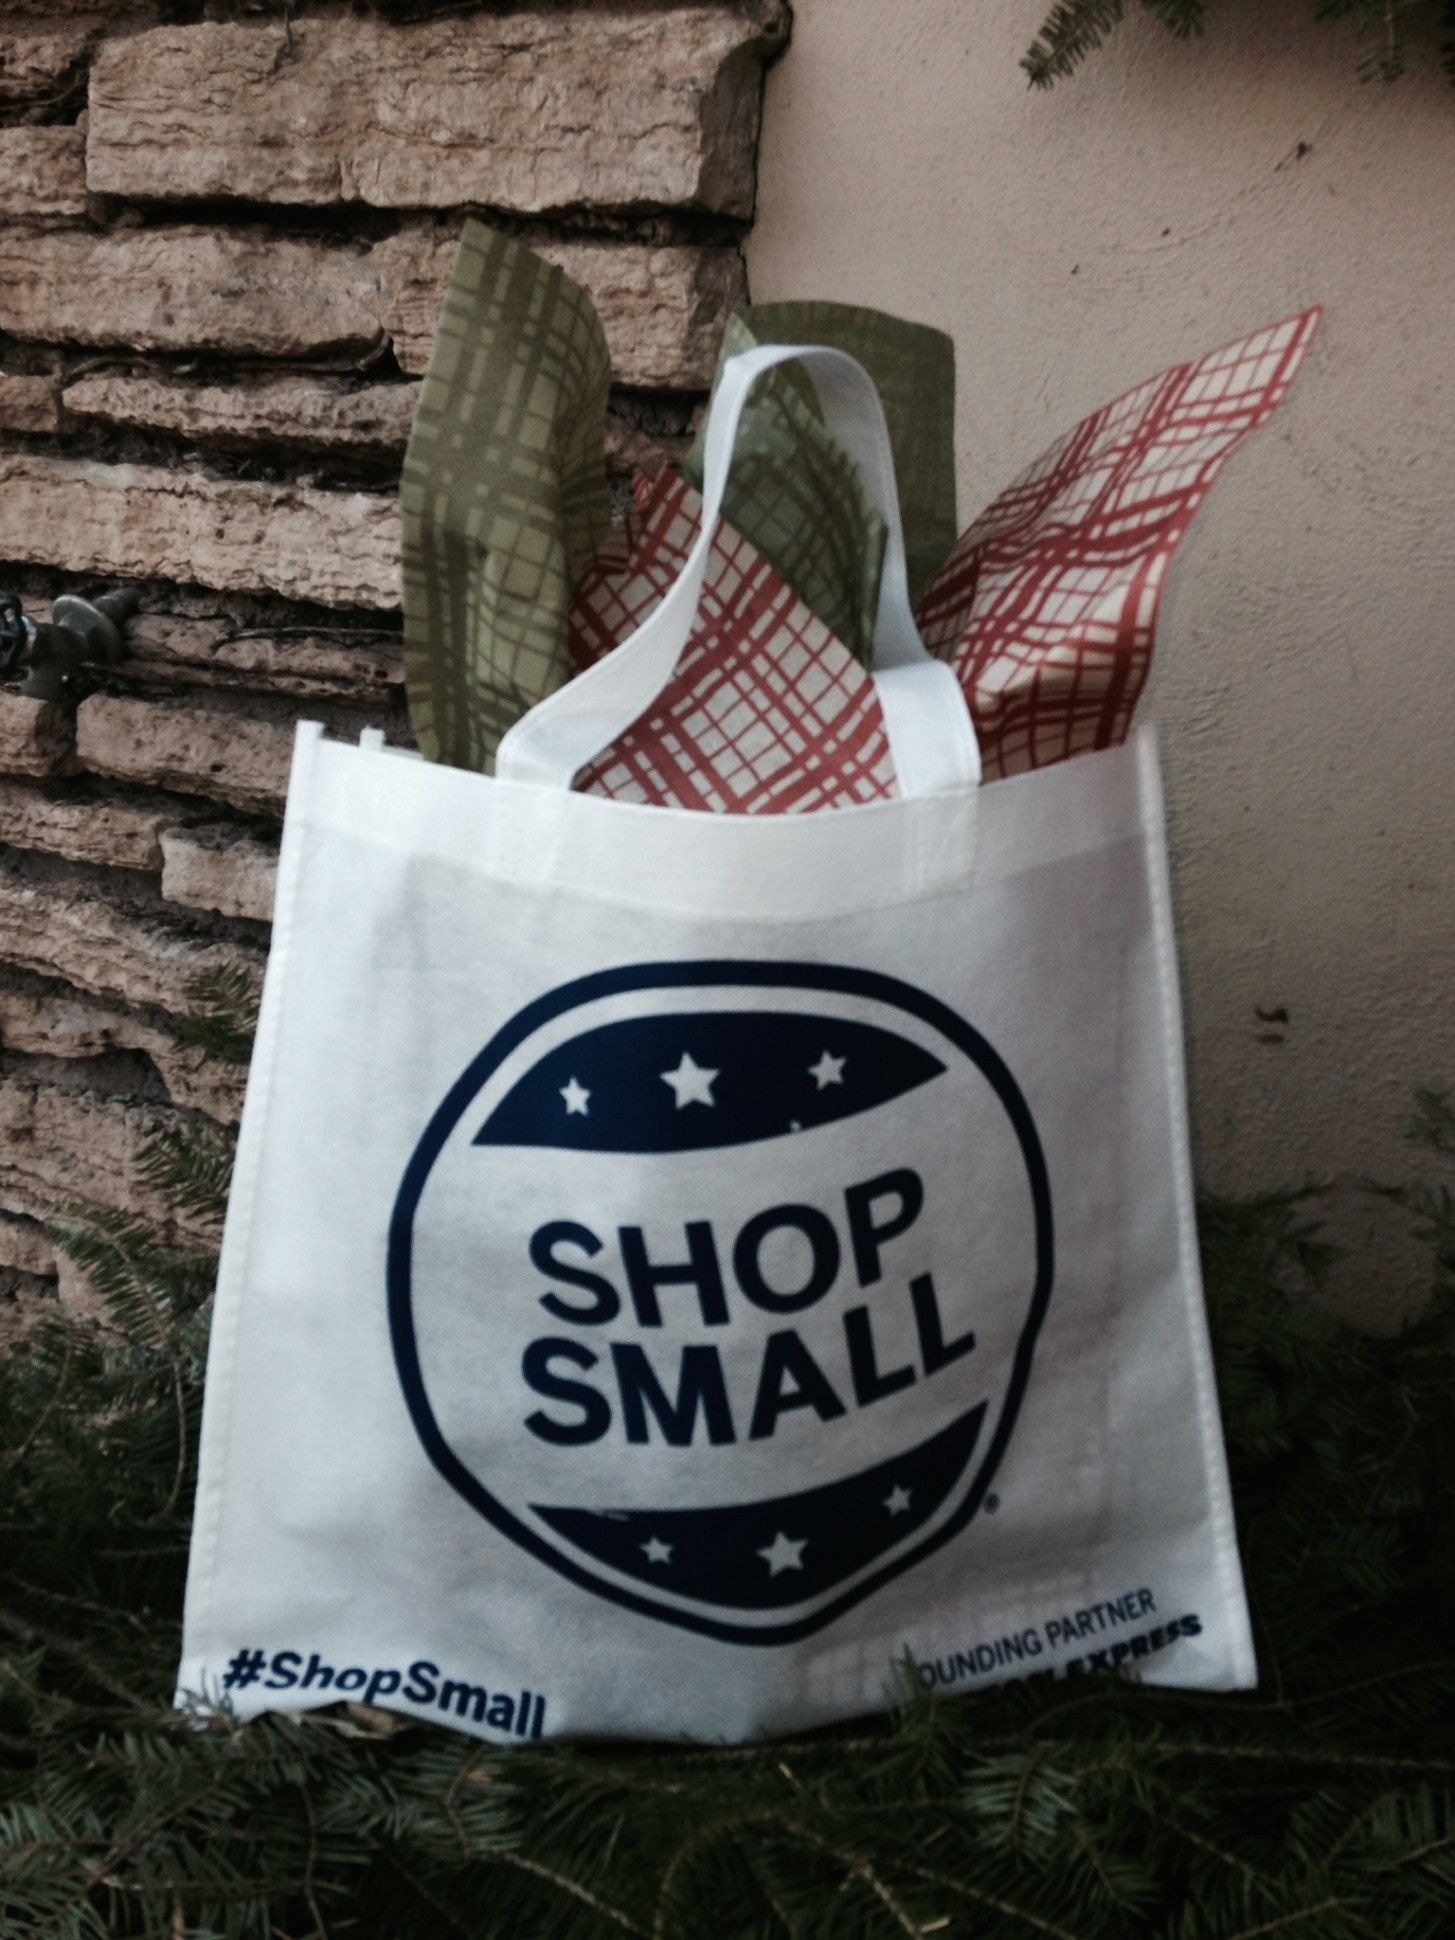 Why Small Business Saturday Is The Most Important Day To